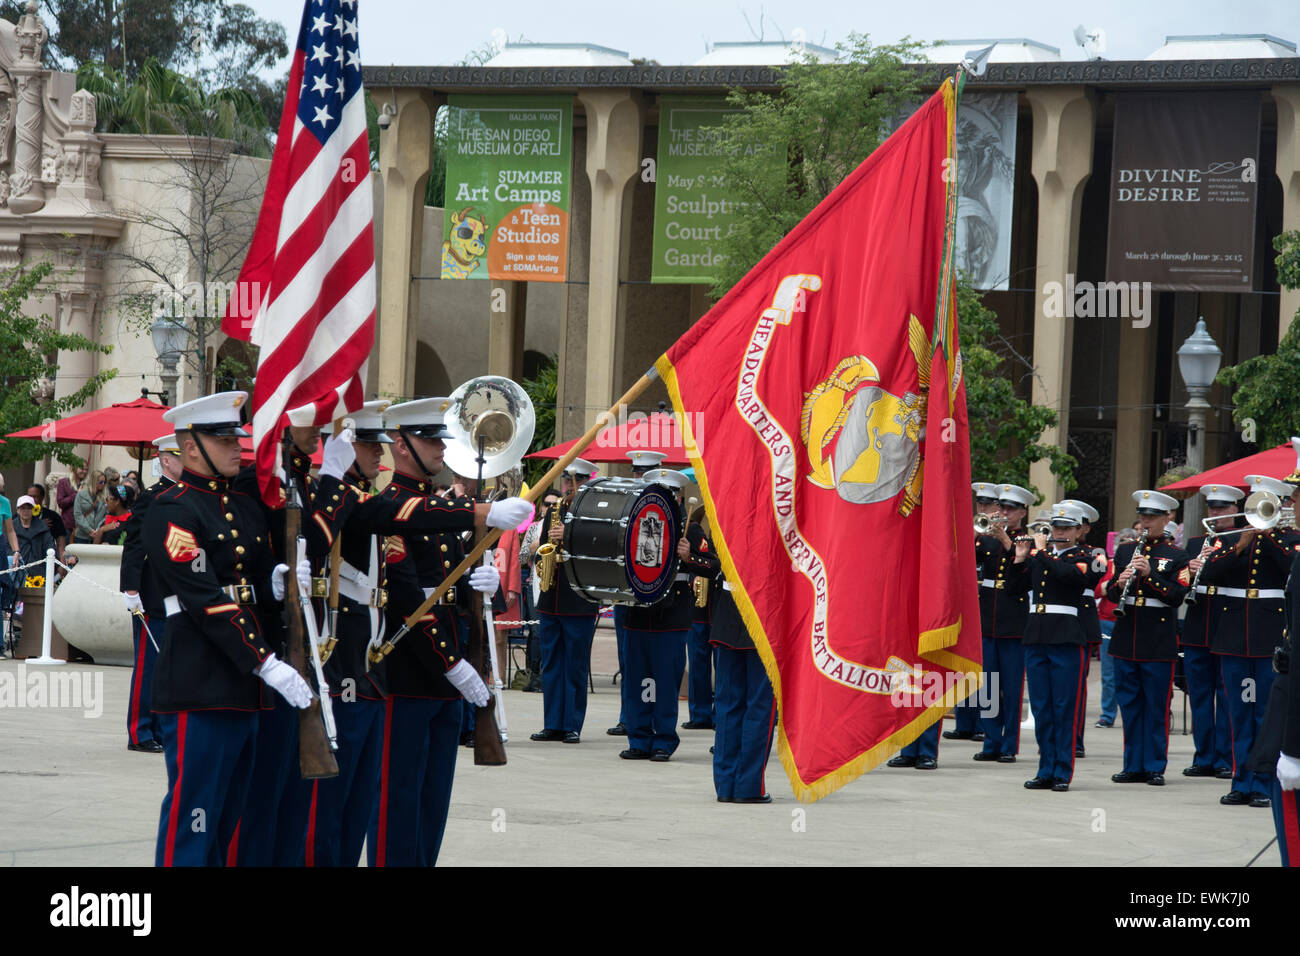 Marines parading through Balboa Park, San Diego, an the 100th anniversary of the parks opening. Stock Photo